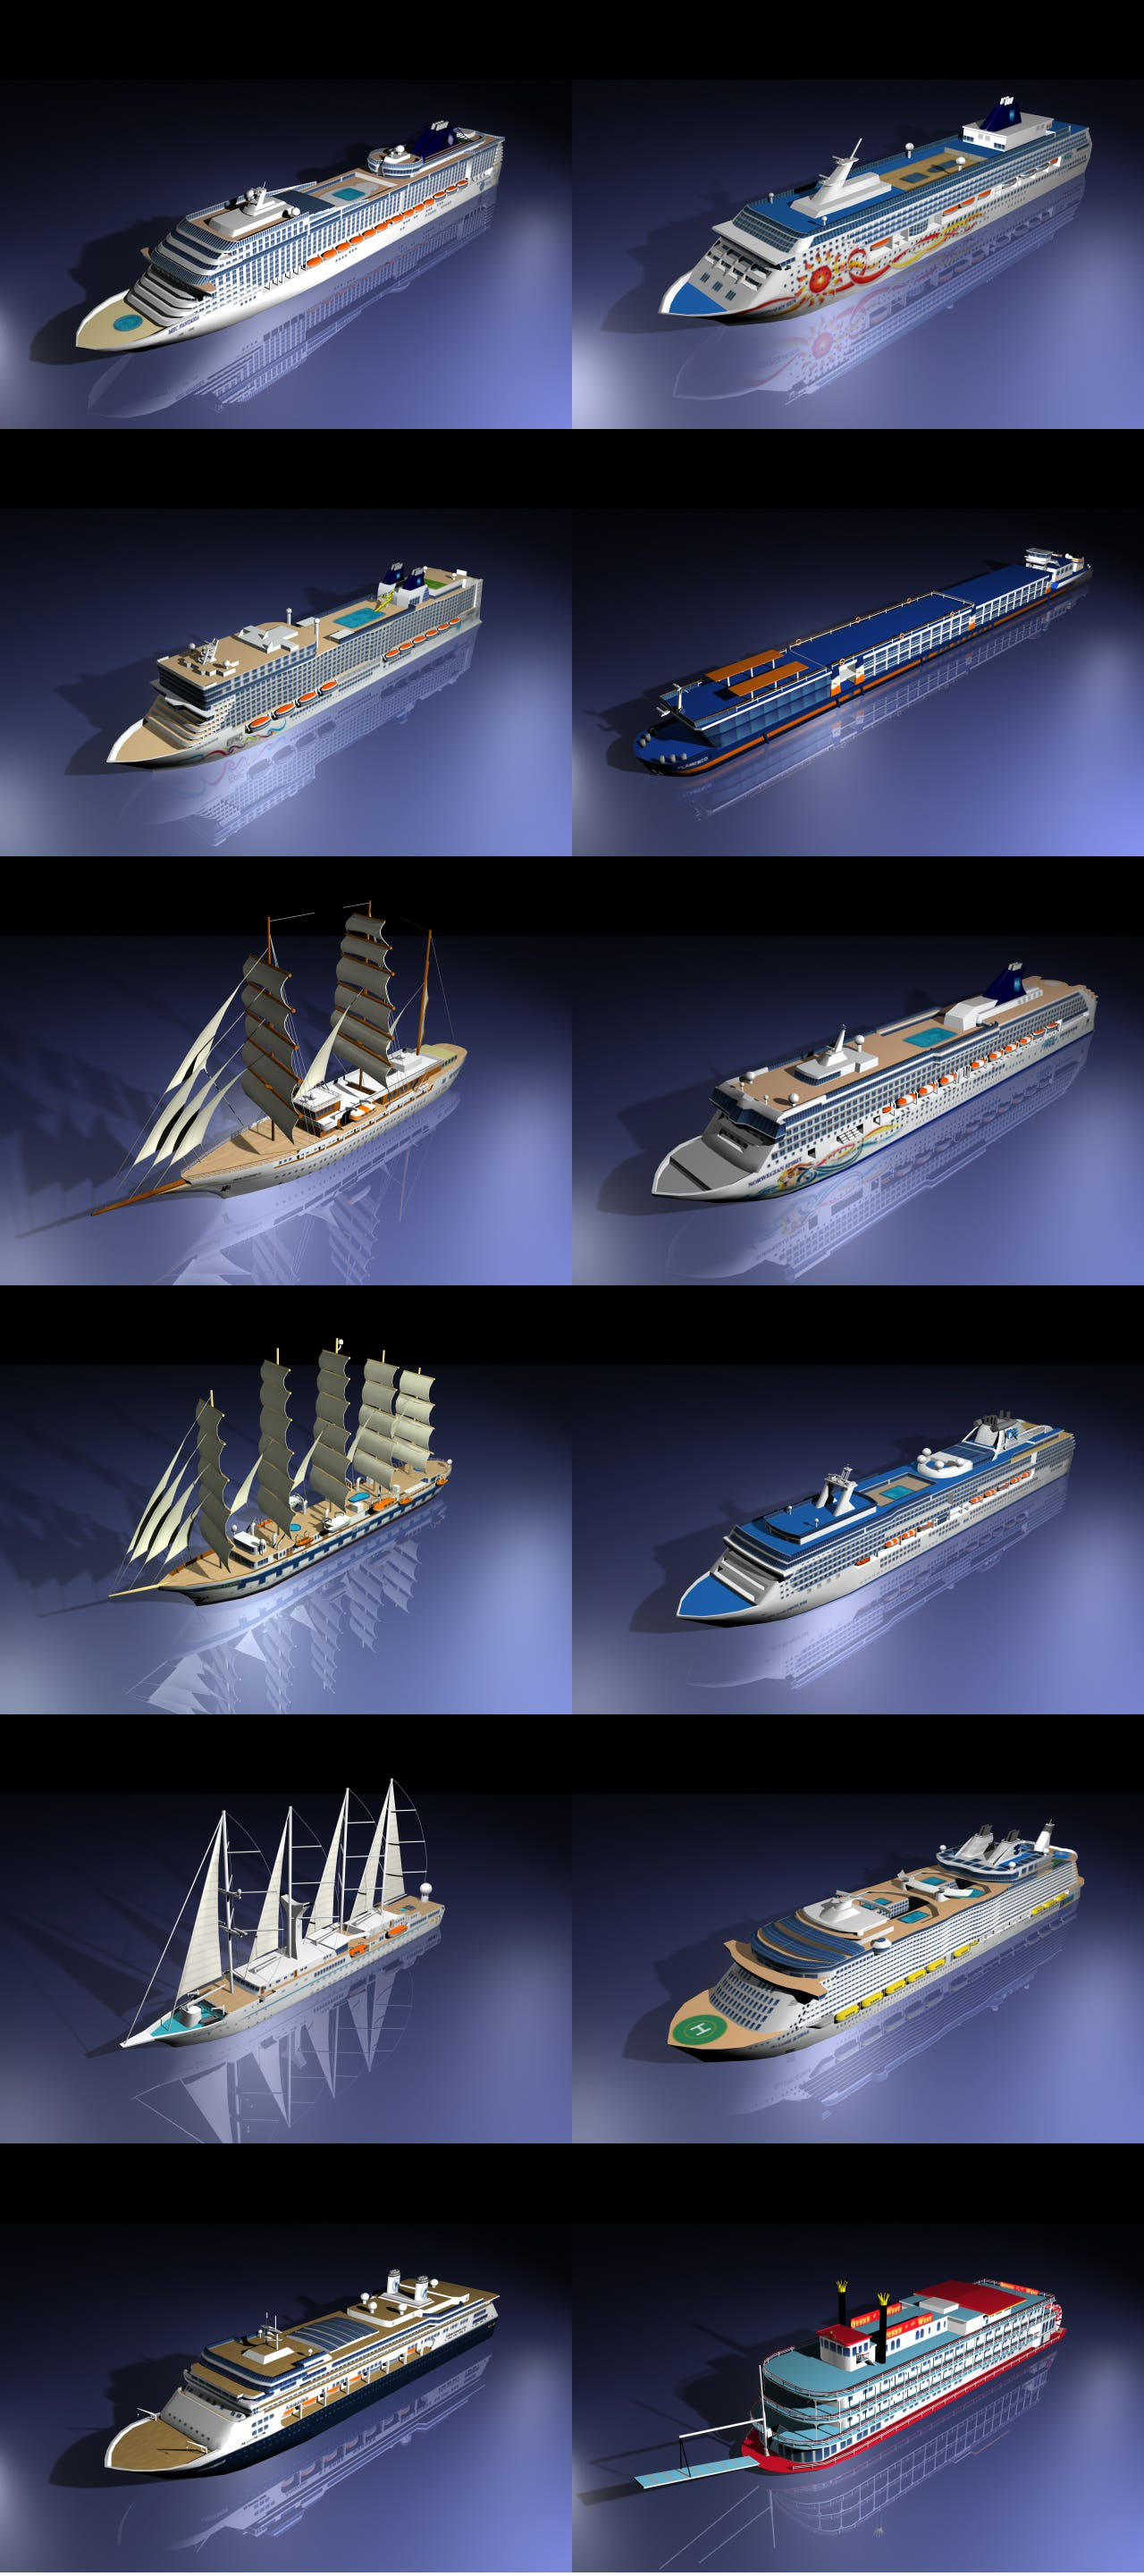 3D models of cruise ships - modeling + texturing